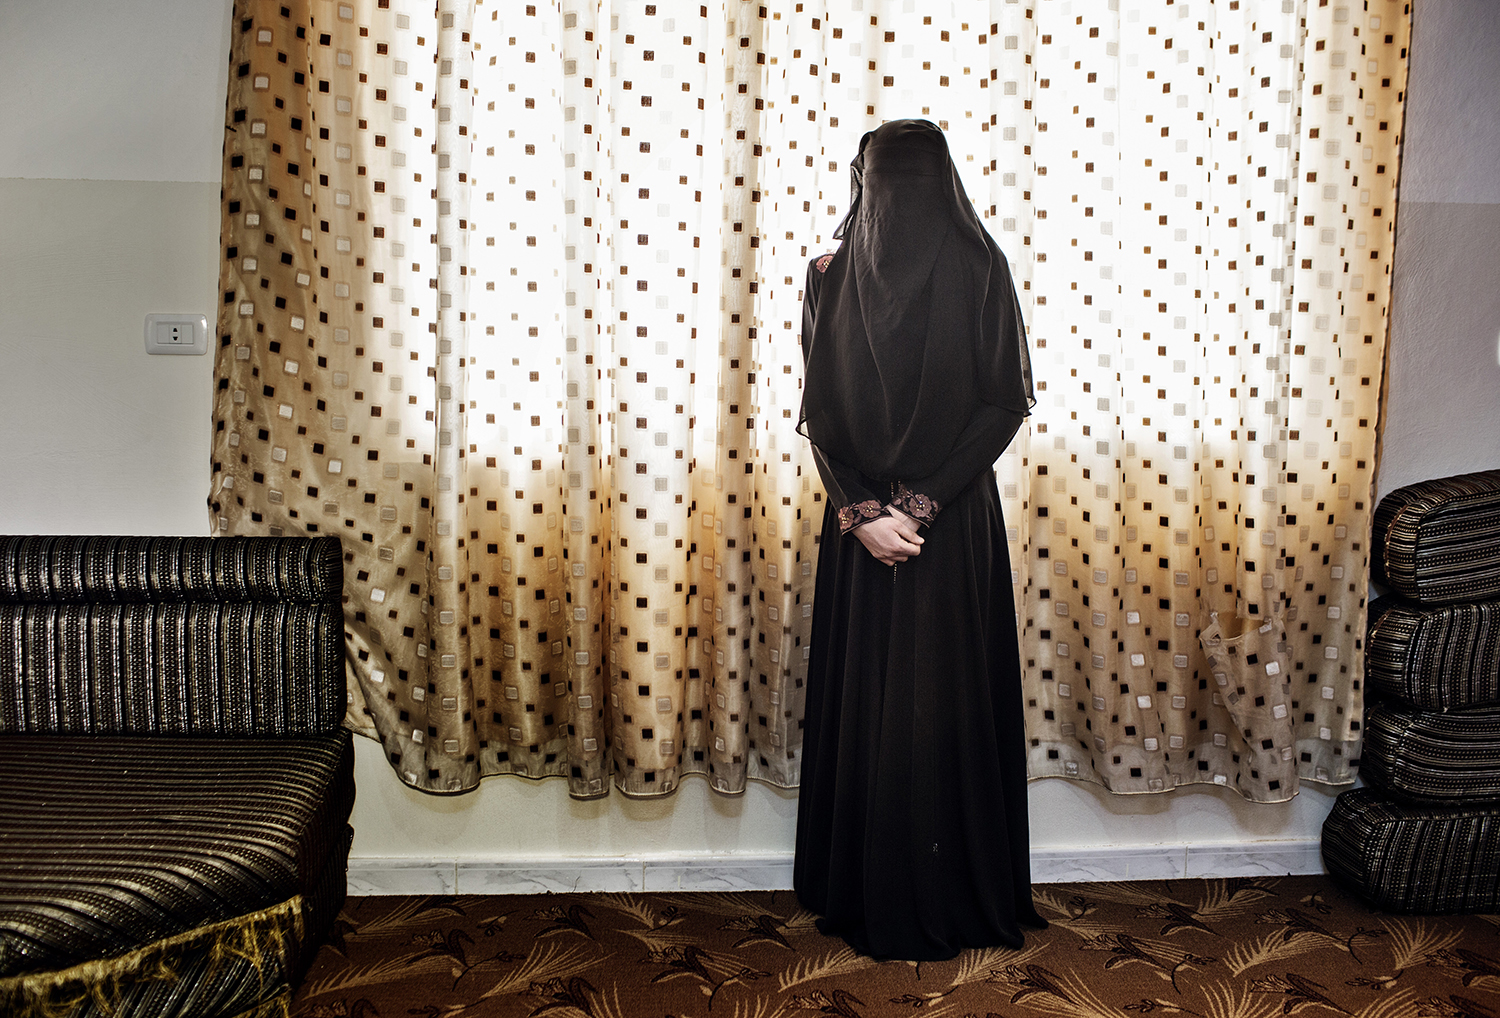 From the series: Tomorrow There Will Be Apricots, on Syrian widows and their families in Jordan.                               M, 15, standing in the niqab she recently started wearing. Her 17-year-old sister had just married, leaving her alone in the  Martyrs' Wives  house with her widowed mother and four siblings. She wanted to finish high school and become a teach. 2014.